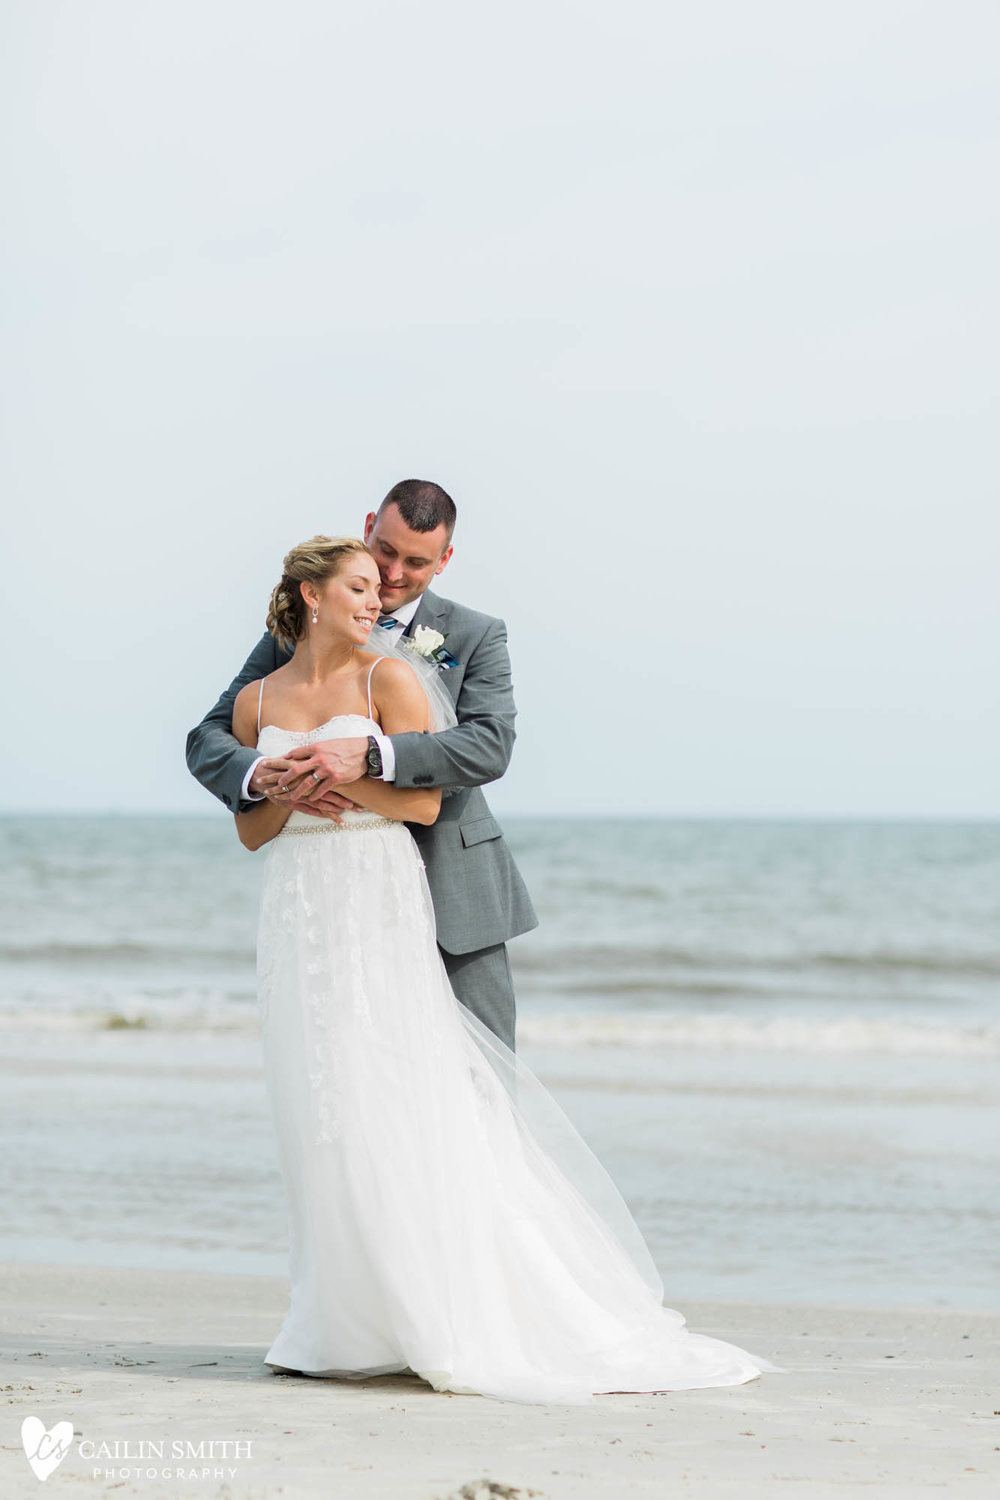 Sarah_Justin_St_Simons_Island_Lighthouse_Wedding_Photography_044.jpg